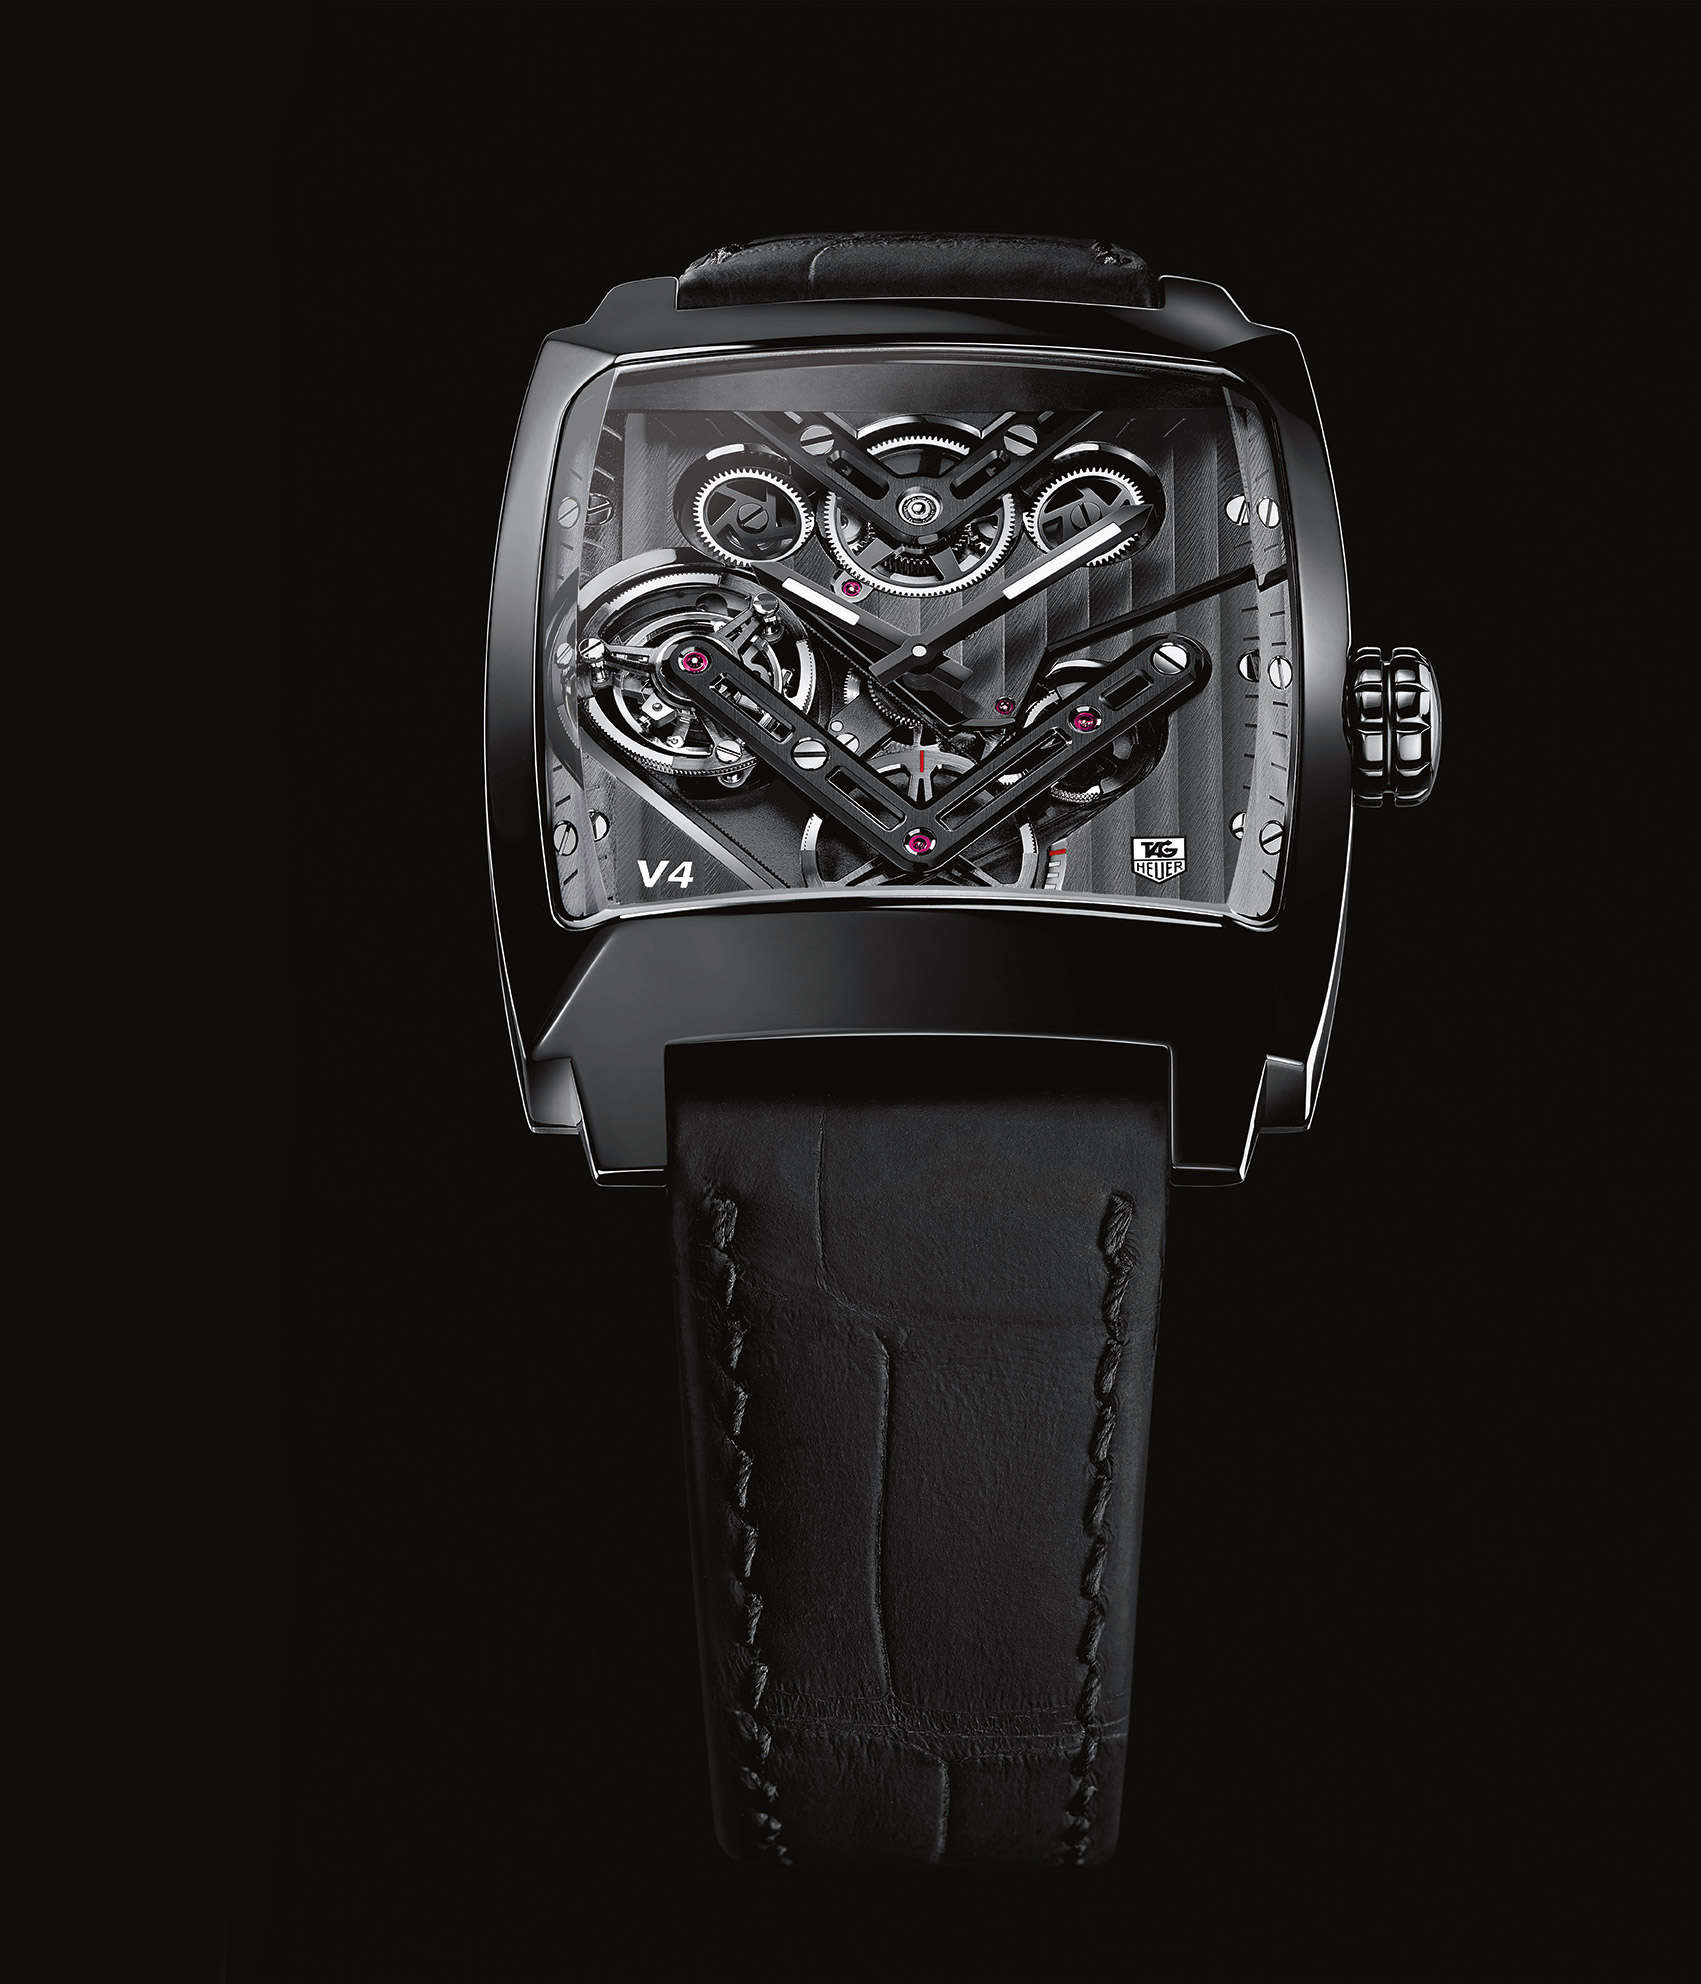 44b6b8d96ff Watch Lab: TAG Heuer Monaco V4 Tourbillon, the First Tourbillon Driven by  Belts | DA MAN Magazine